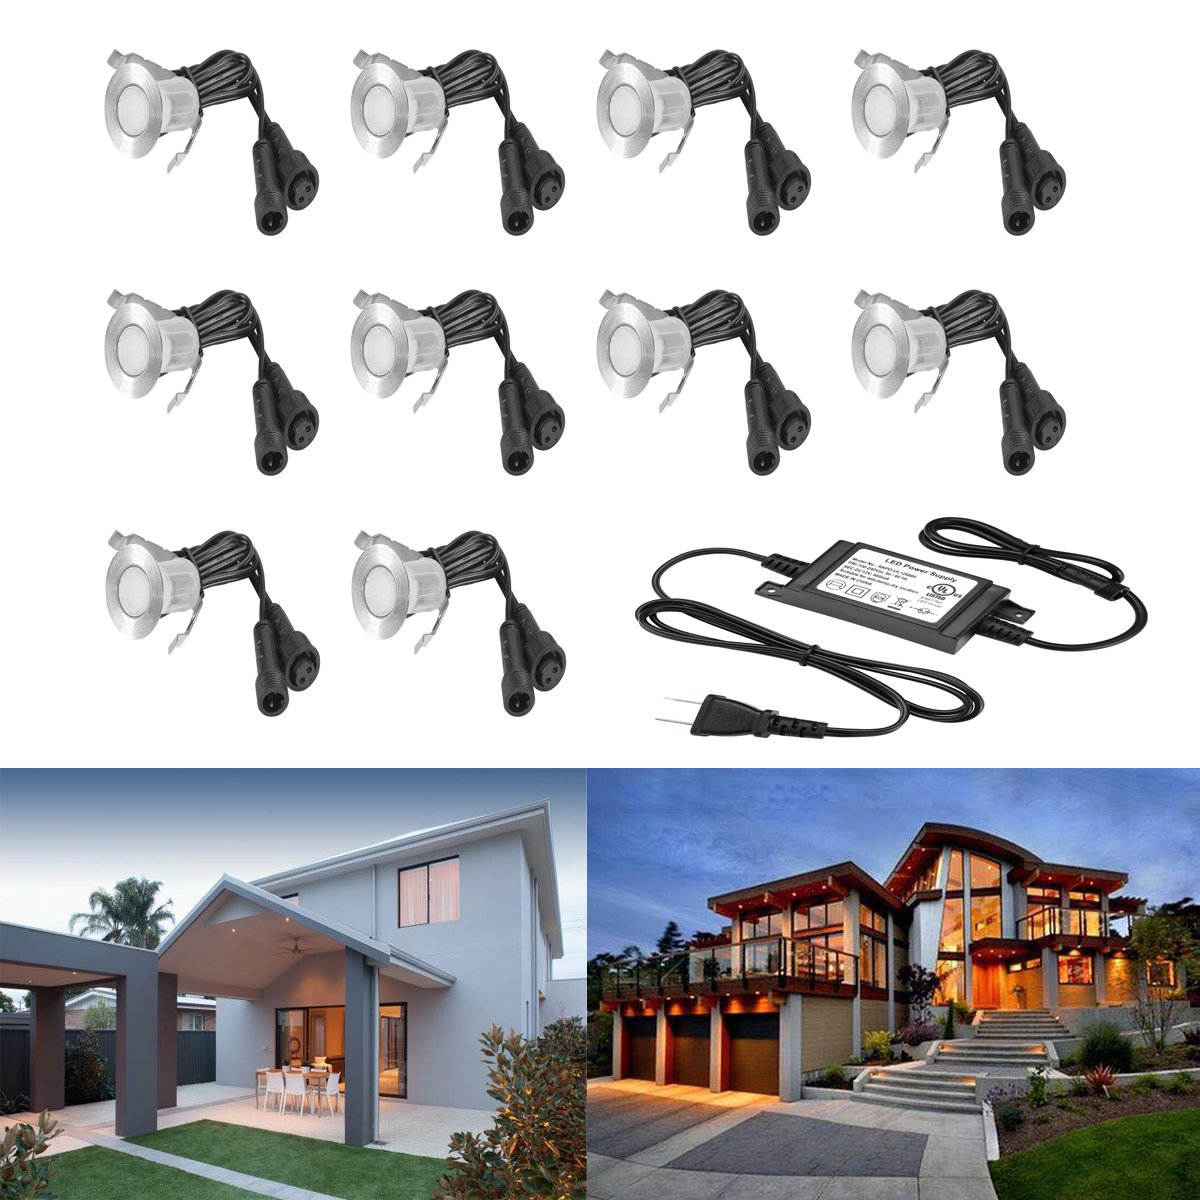 10 Pack Low Voltage LED Deck Lights Φ0.7 Outdoor Garden Yard Step Pathway Decor Lighting LED In-ground Lamp Stainless Steel SMD2835 (Warm White)